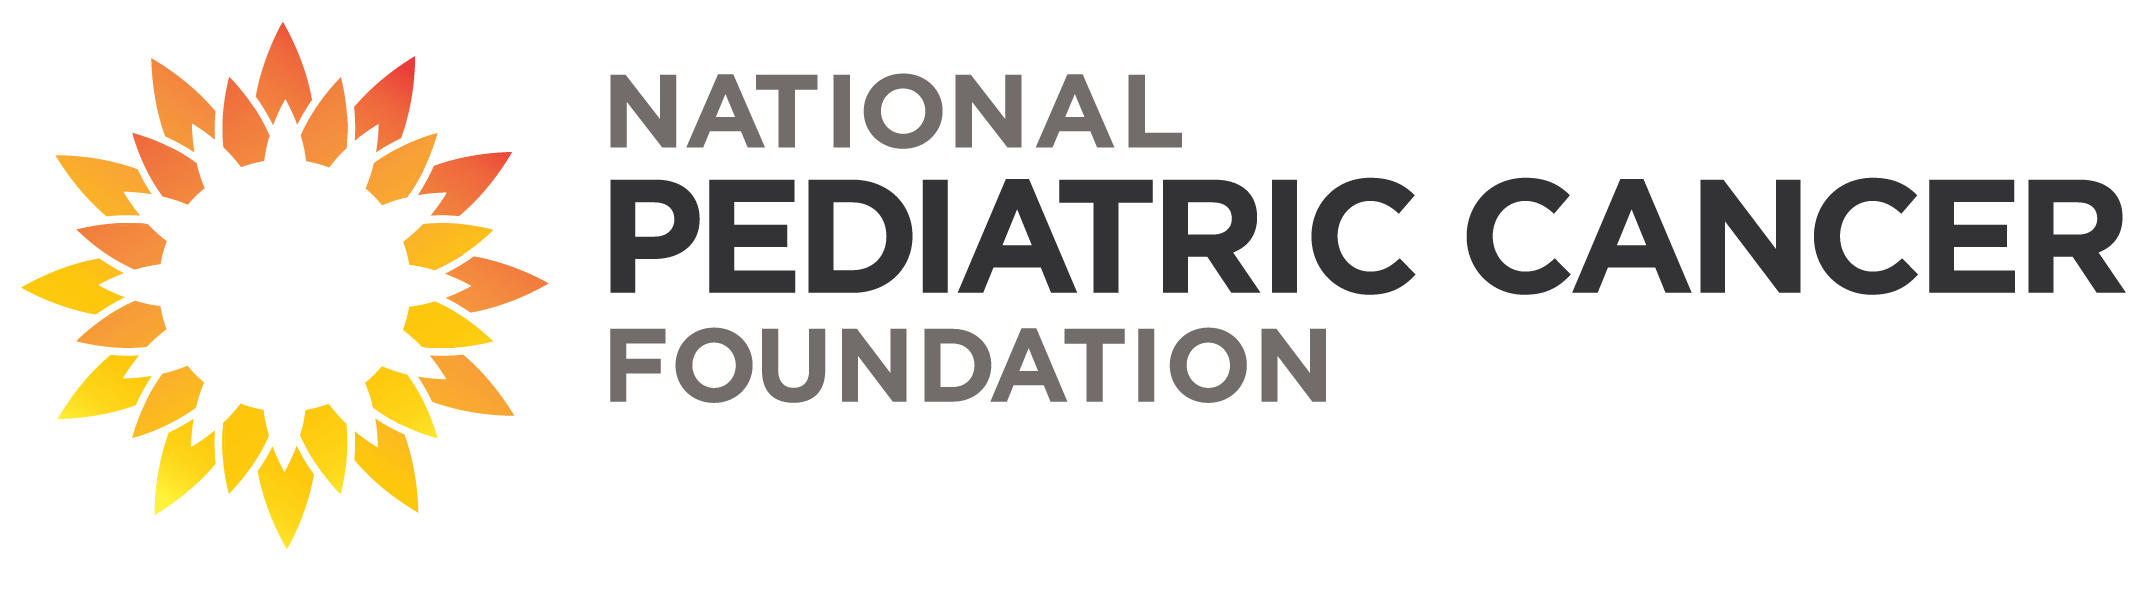 National Pediatric Cancer Foundation Horizontal Full Color Logo